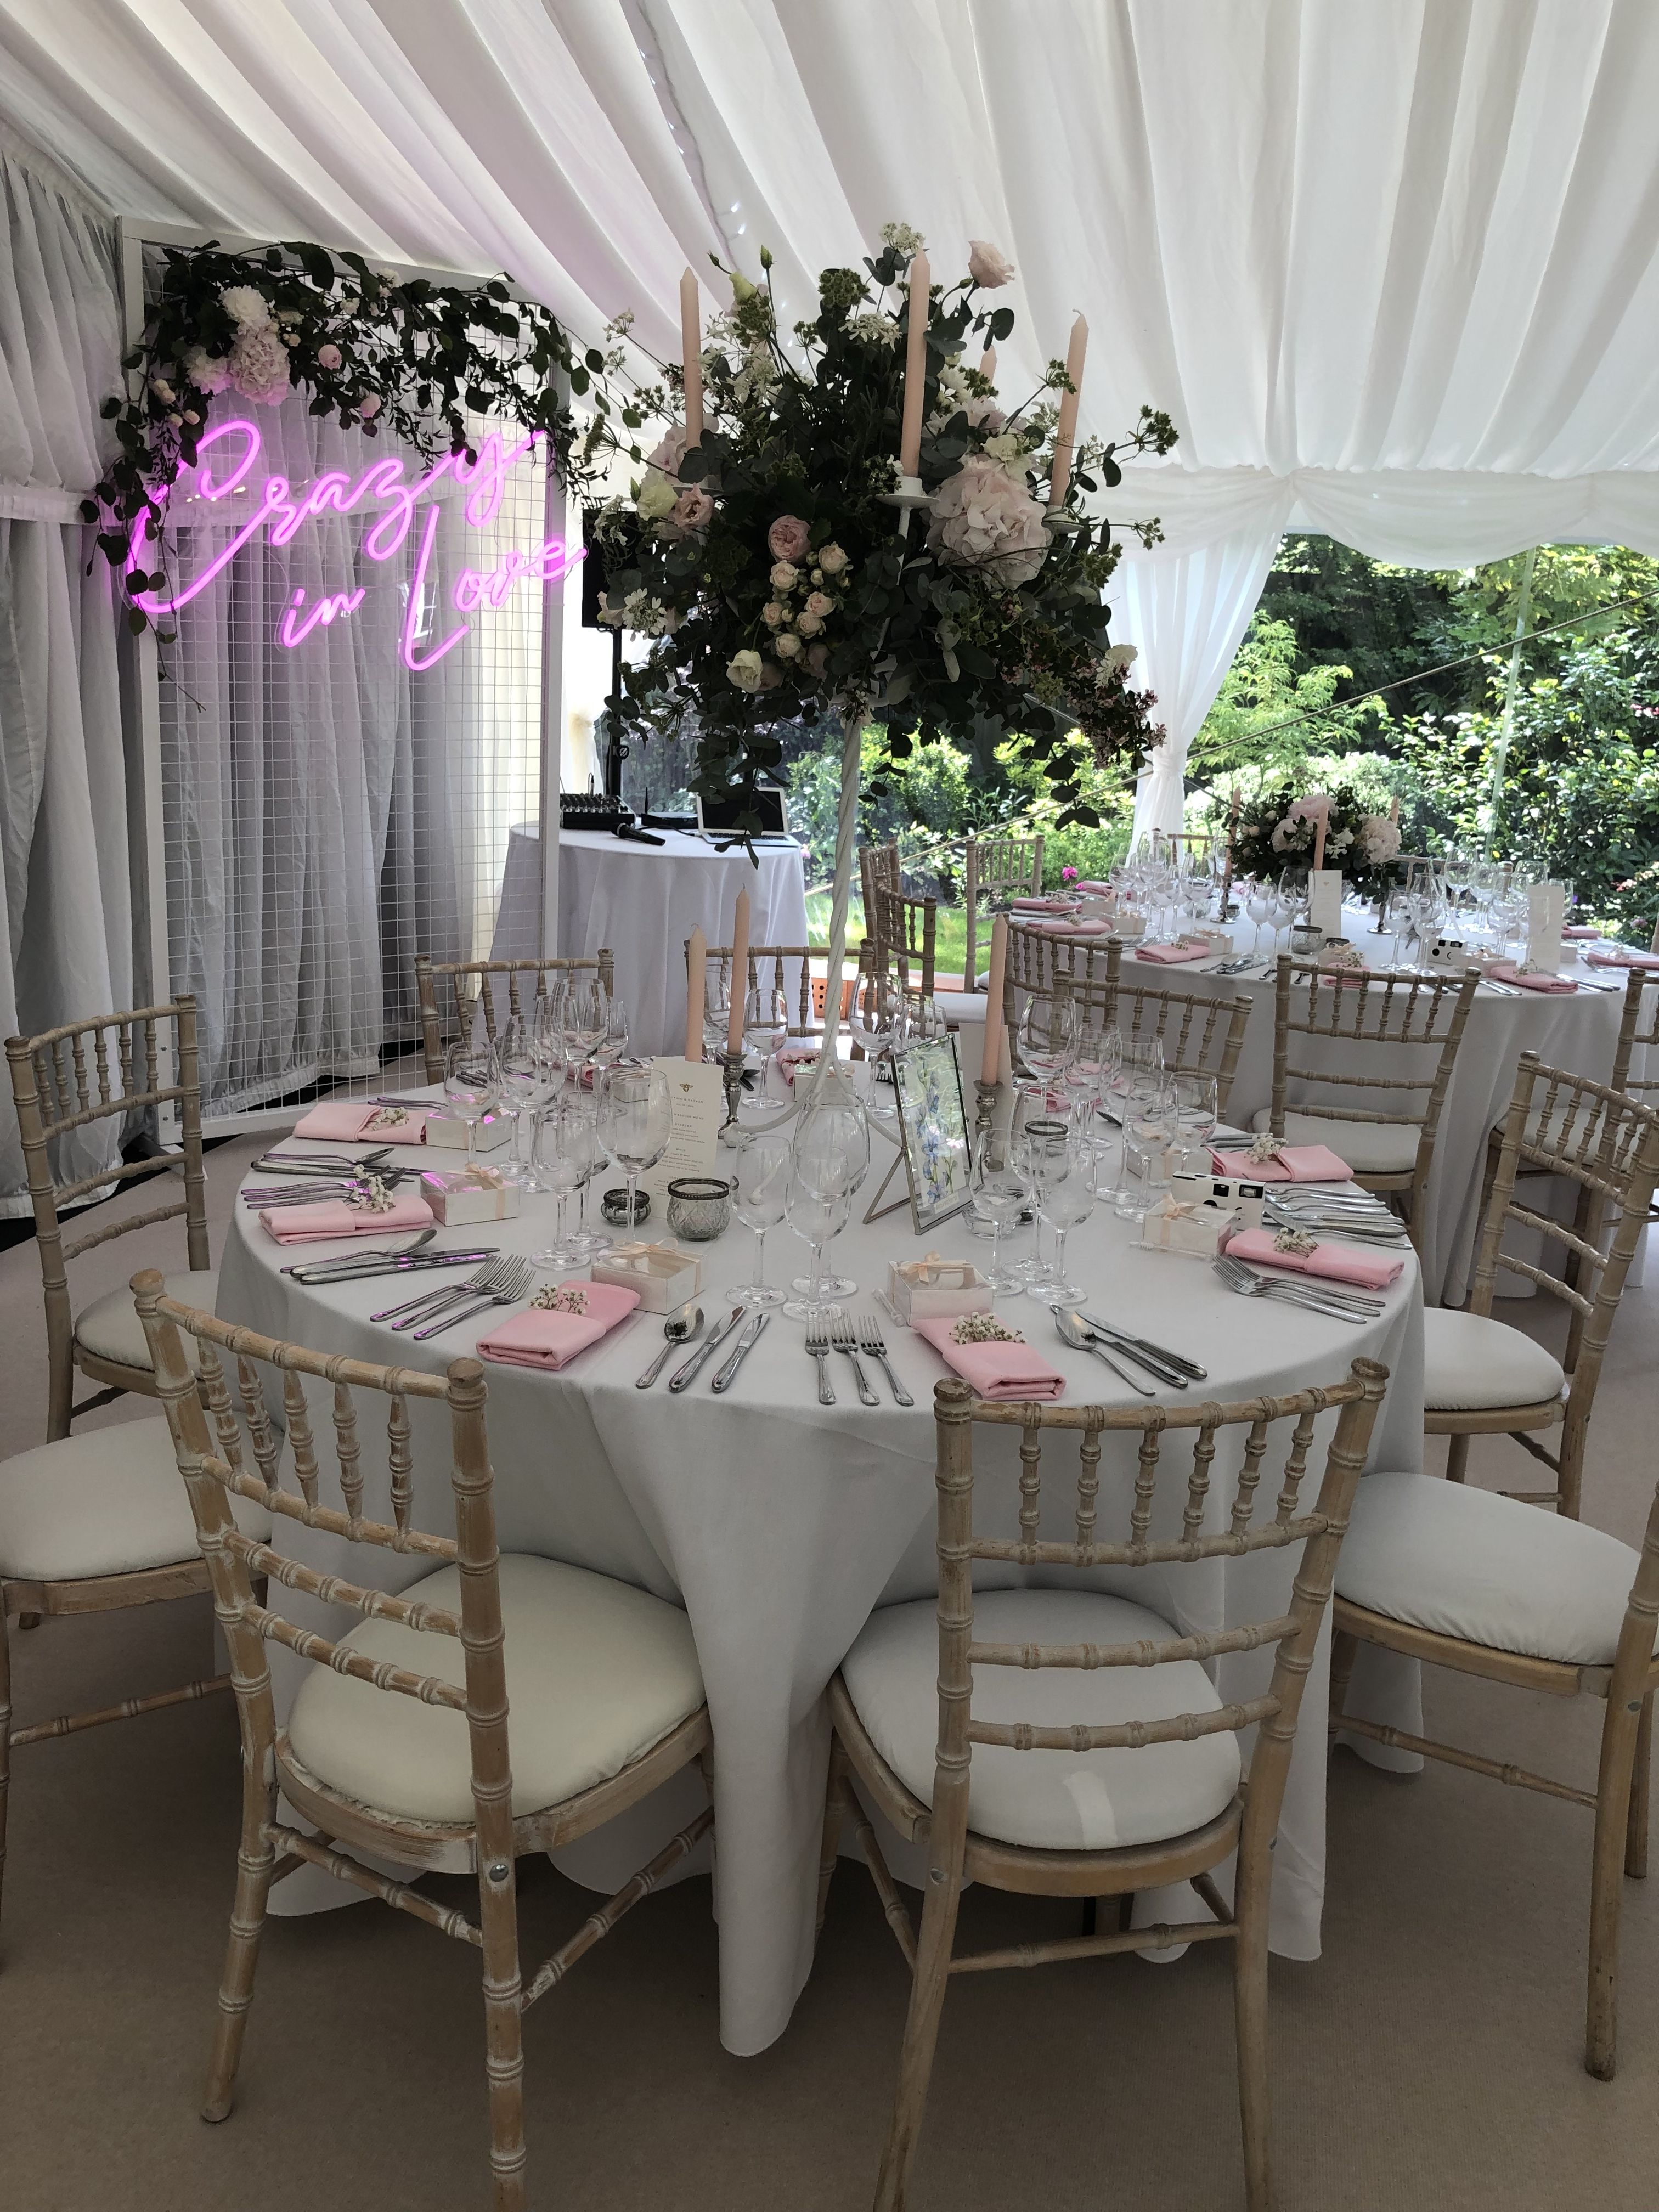 Crazy in love sign, table decor and white chiavari chairs with ivory seat pads #tabledecorations #tabledecor #weddinglighting #weddinglights #weddinginspiration #weddingdecorationideas #marqueewedding #marqueelights